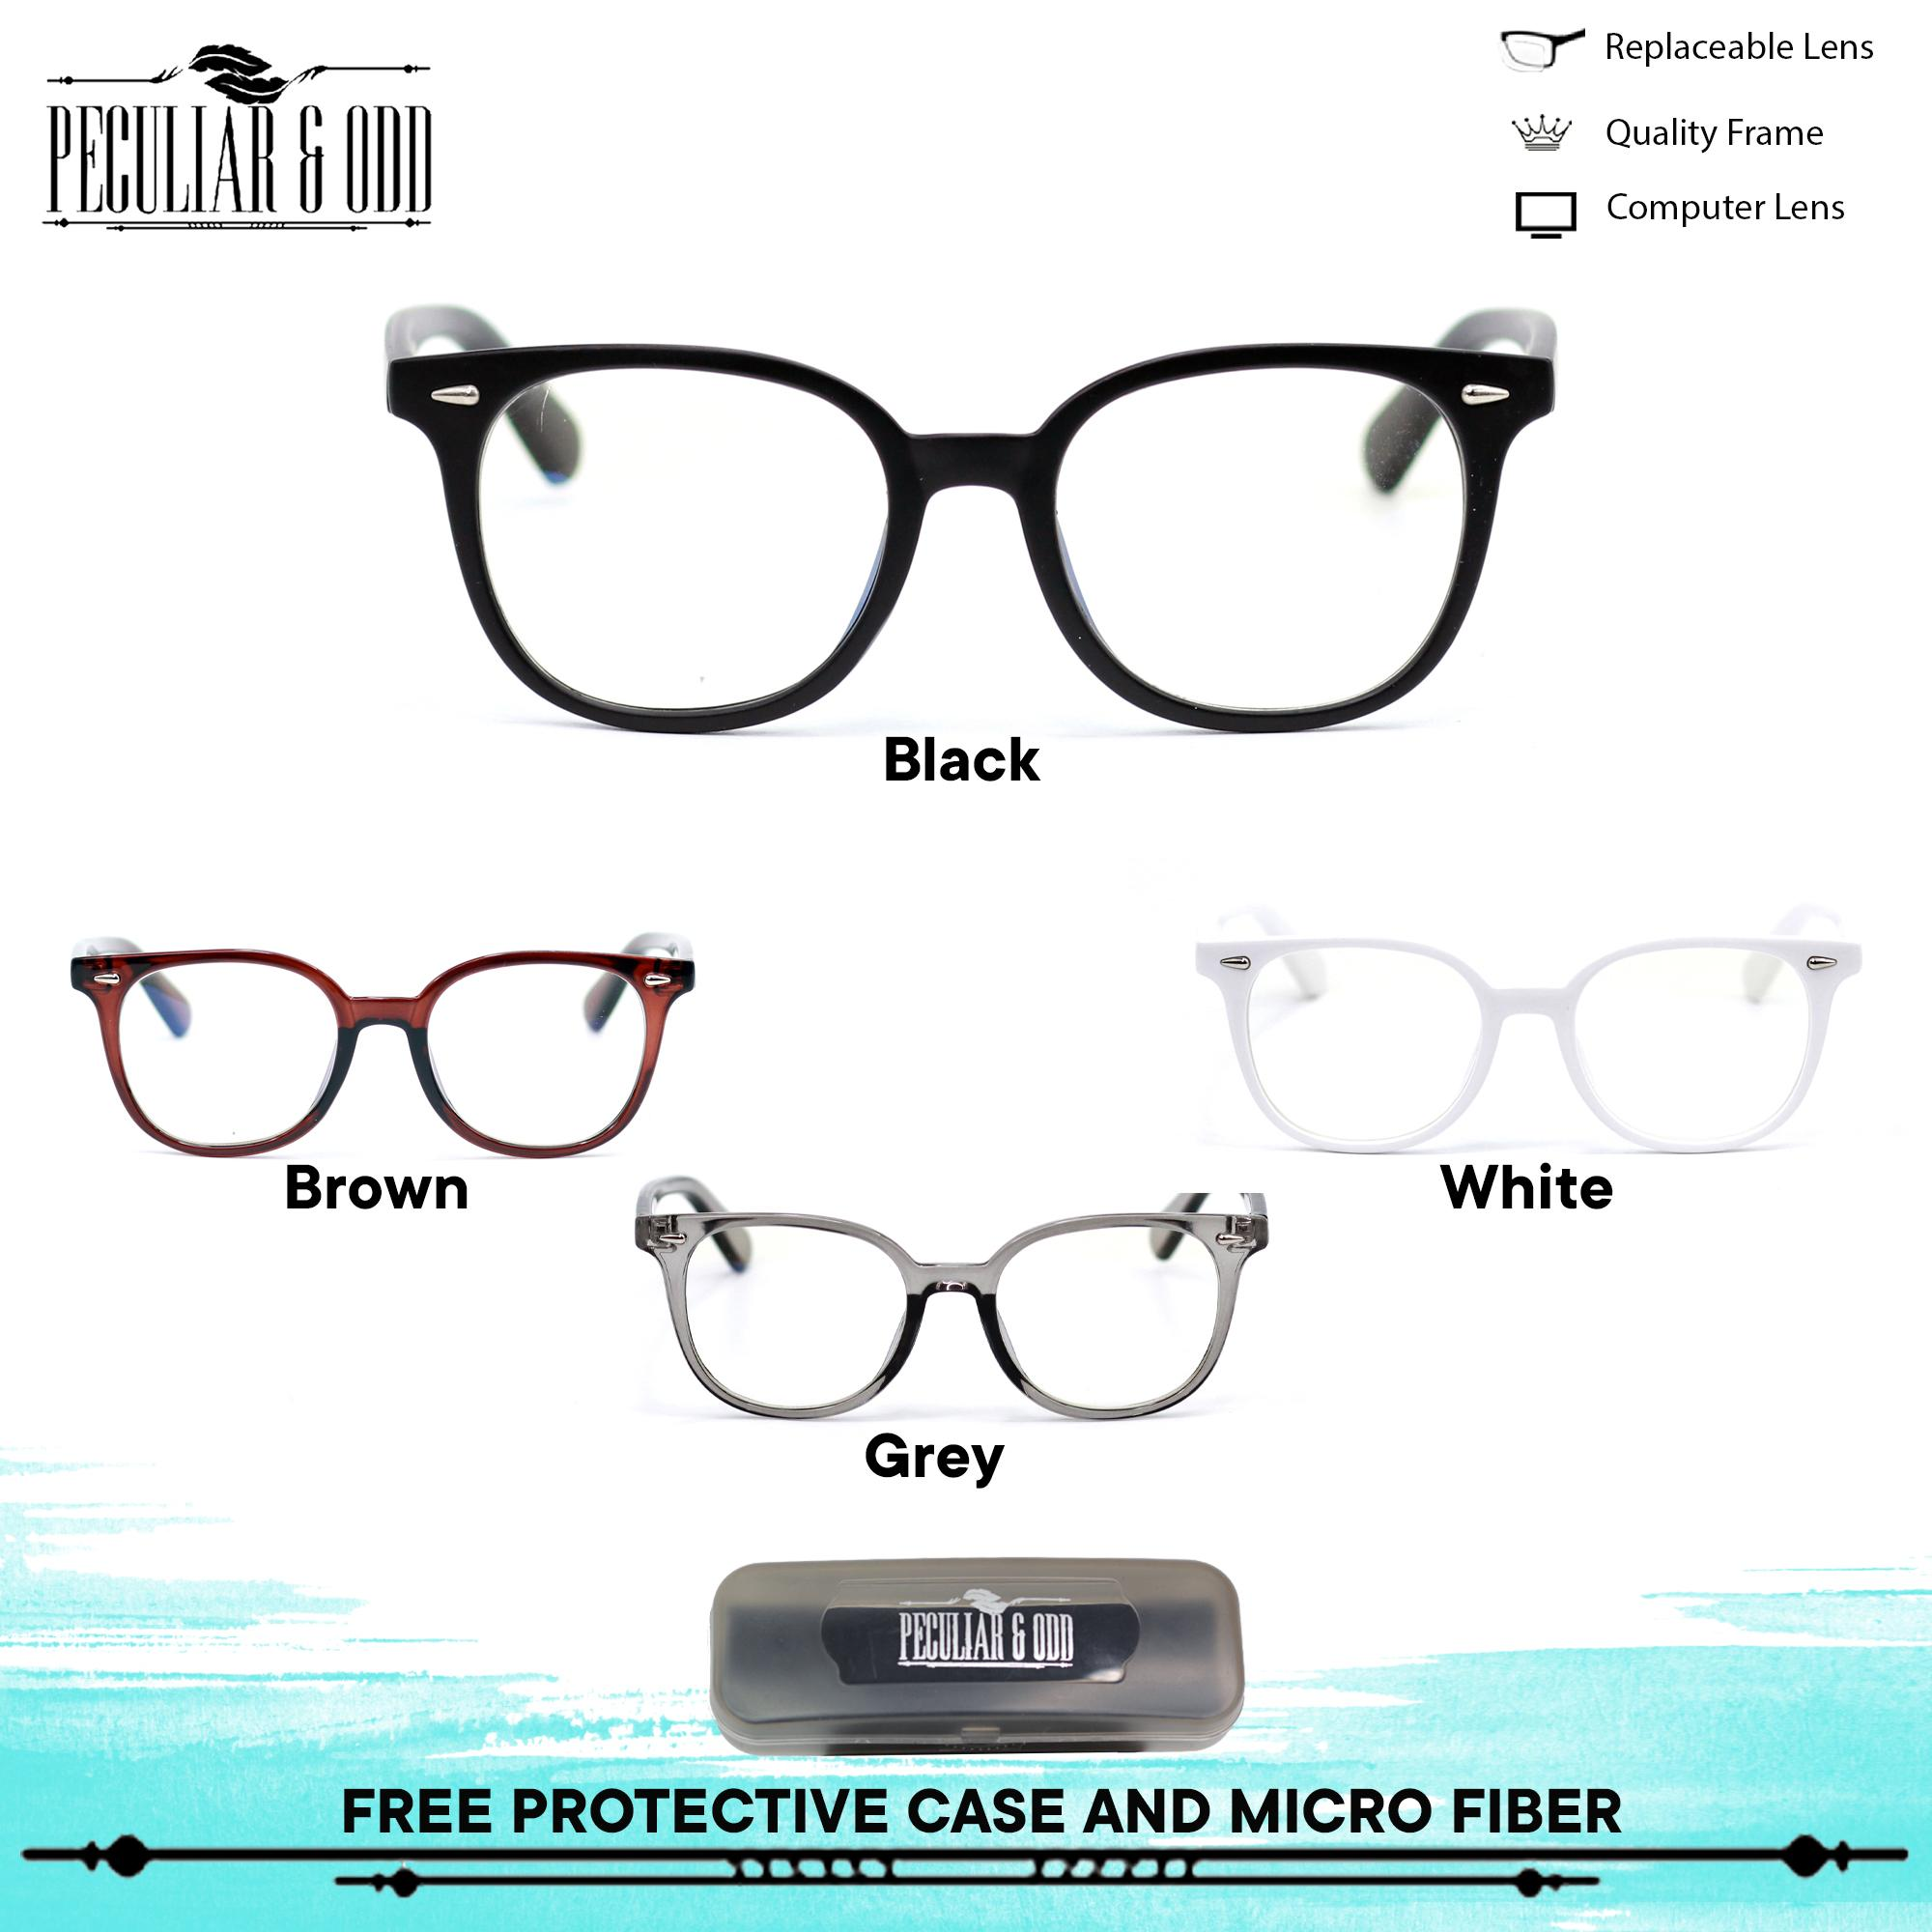 6e6a8b869edf Peculiar Round Eyeglasses 61422 Antiradiation Lenses Lightweight  Replaceable Optical Lens Unisex Eyewear